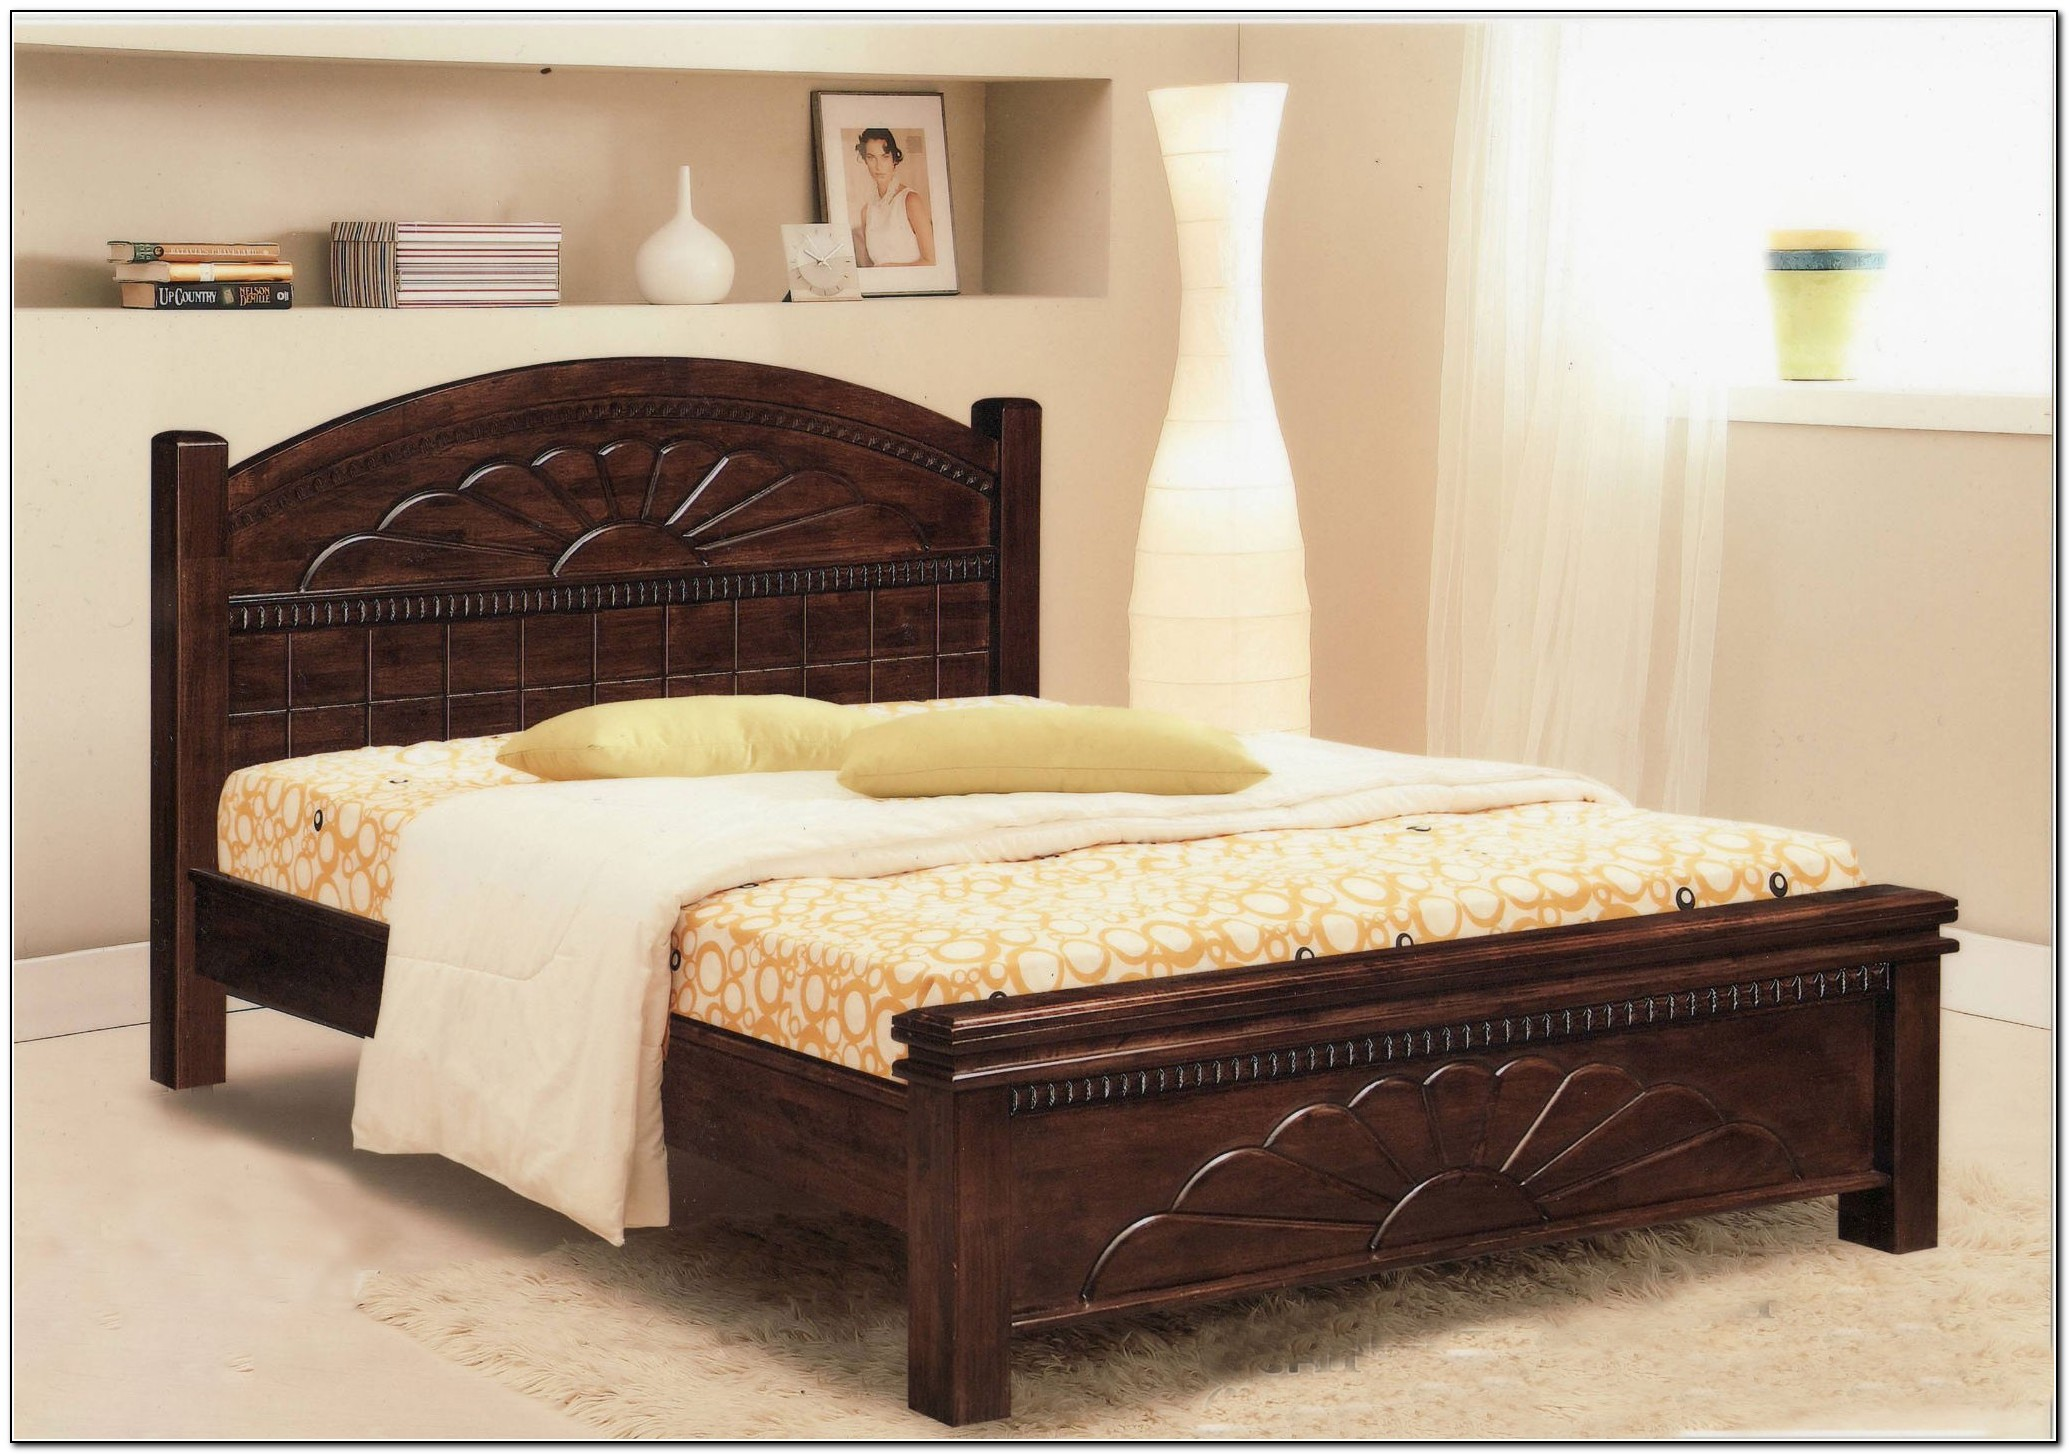 King Size Bed Frame Wood Beds Home Design Ideas 8angleodgr2584